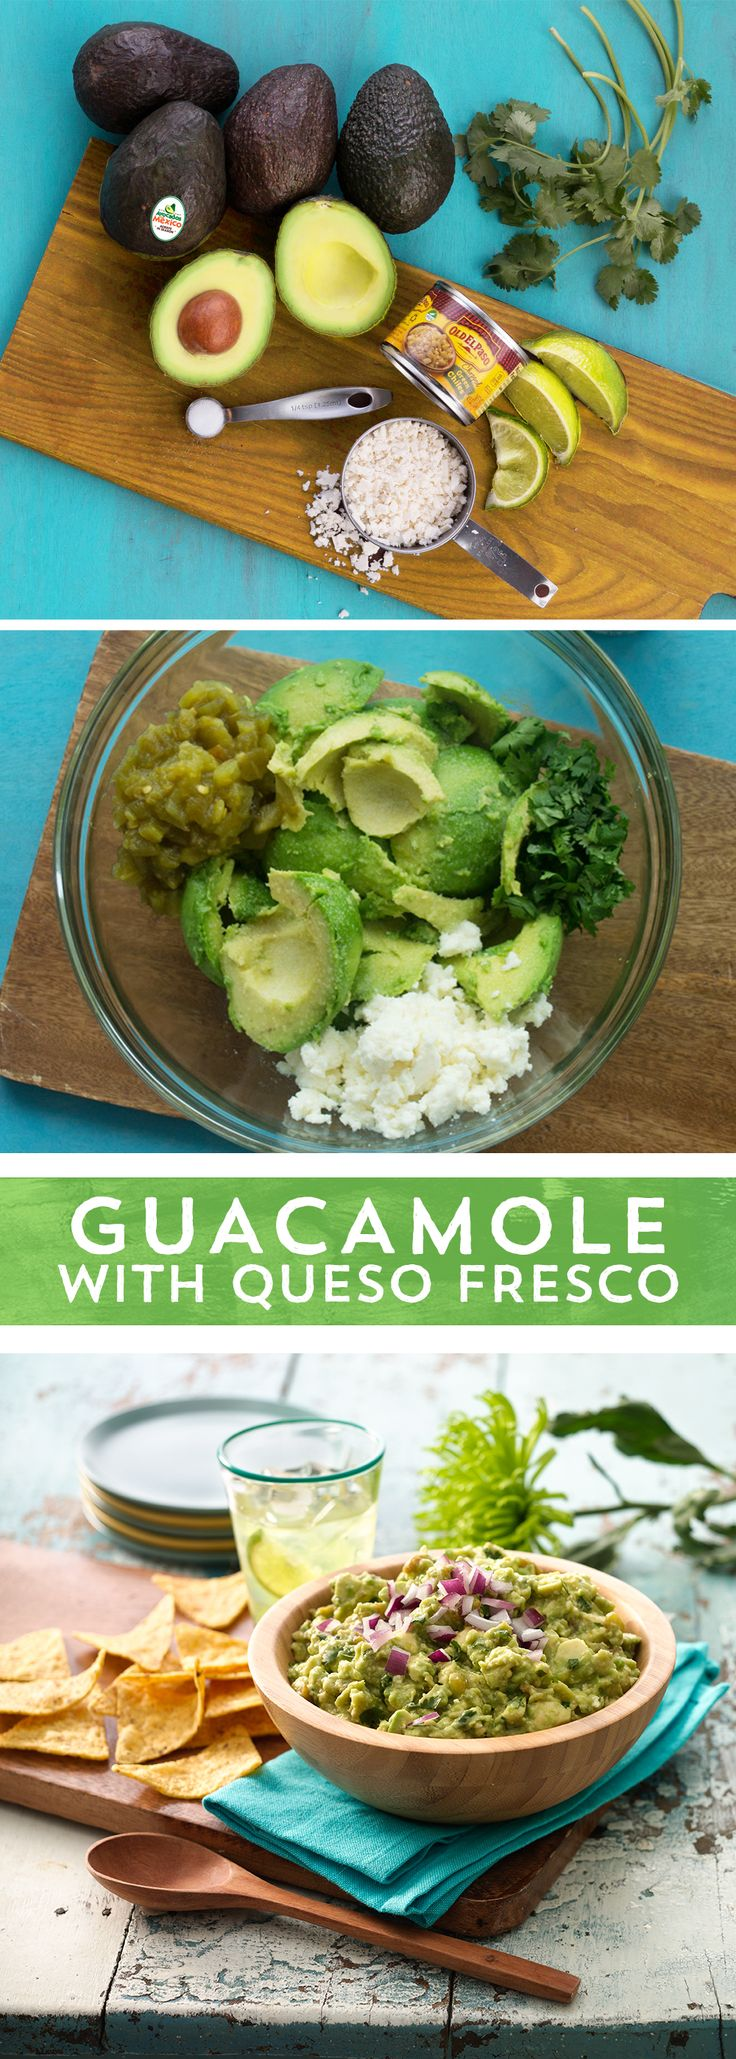 A party isn't started until there's guacamole on the table! This Guacamole with Green Chiles and Queso Fresco is a fun twist on the traditional recipe. Start with ripe Avocados from Mexico™, mash and combine with cilantro, salt, cheese and Old El Paso Chopped Green Chiles™, and serve with your favorite chips! This simple 15-minute recipe is sure to score big with your Game Day crowd!